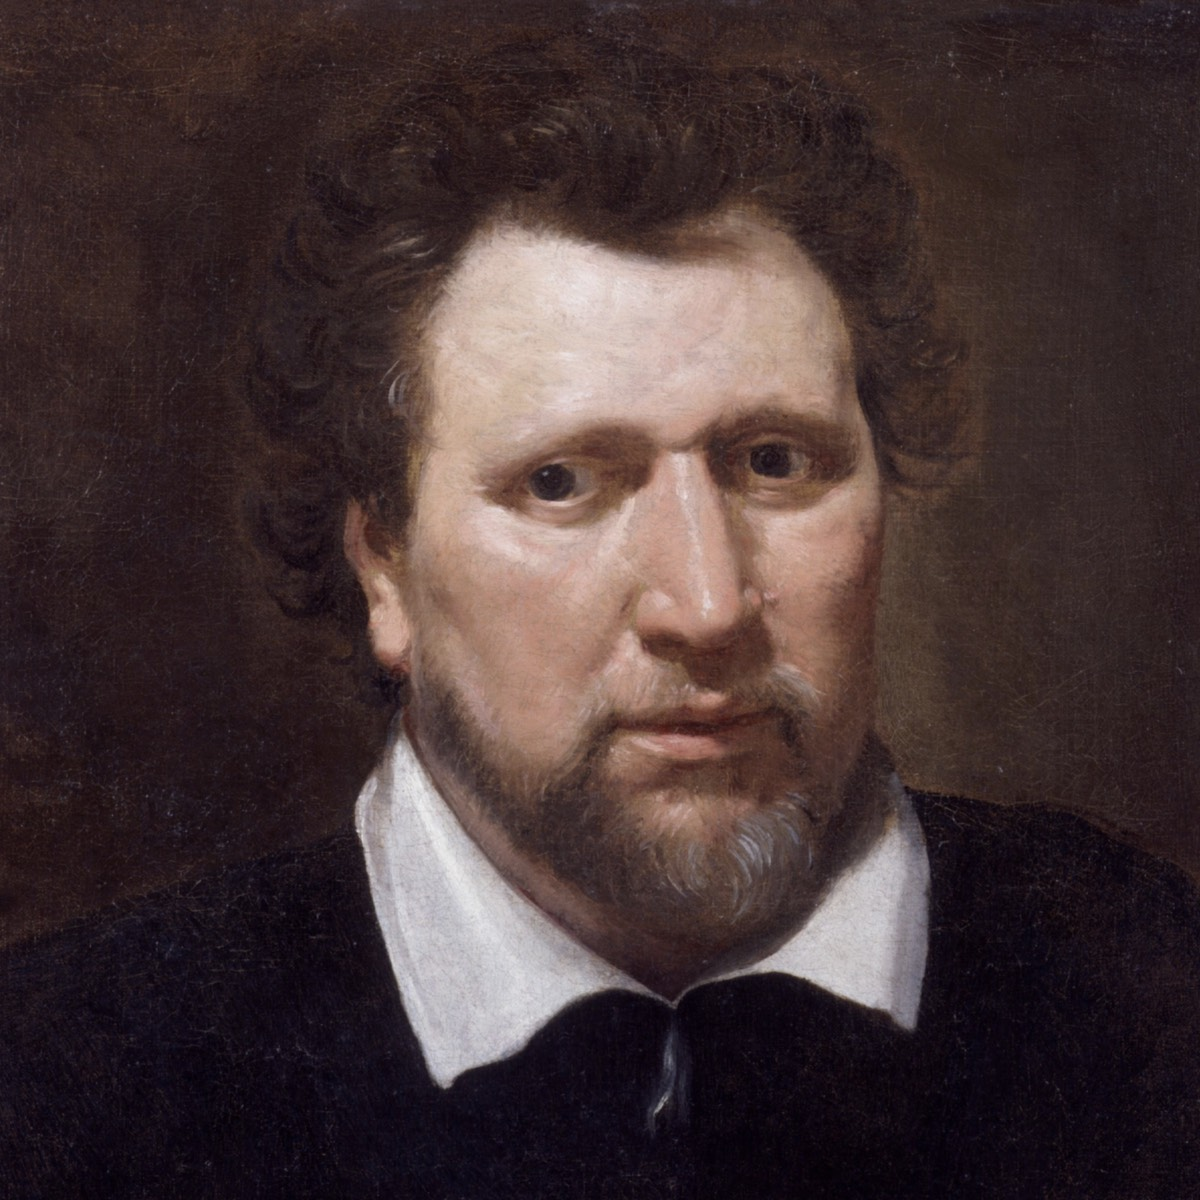 Rival playright Ben Jonson was the son of a bricklayer